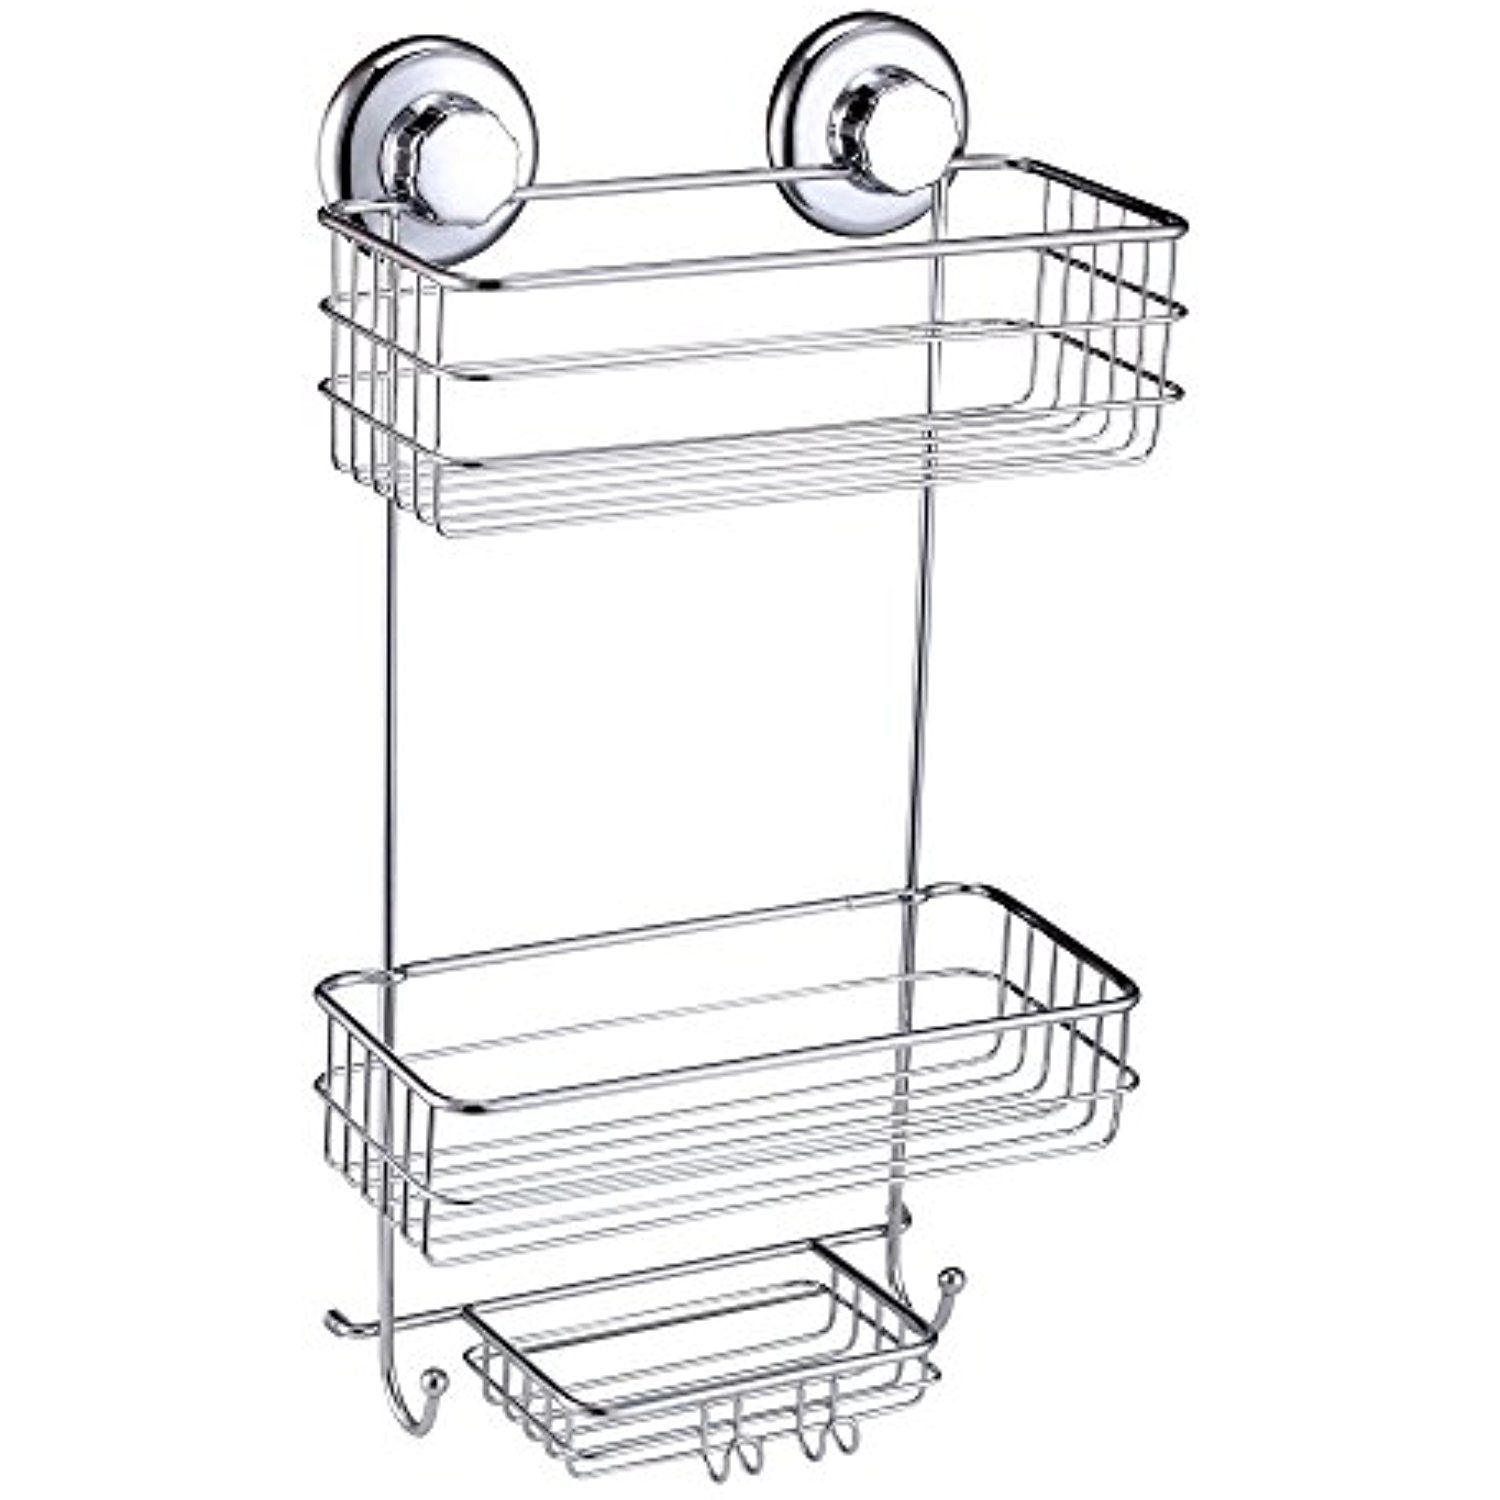 HASKO accessories - Powerful Vacuum Suction Cup Shower Caddy ...